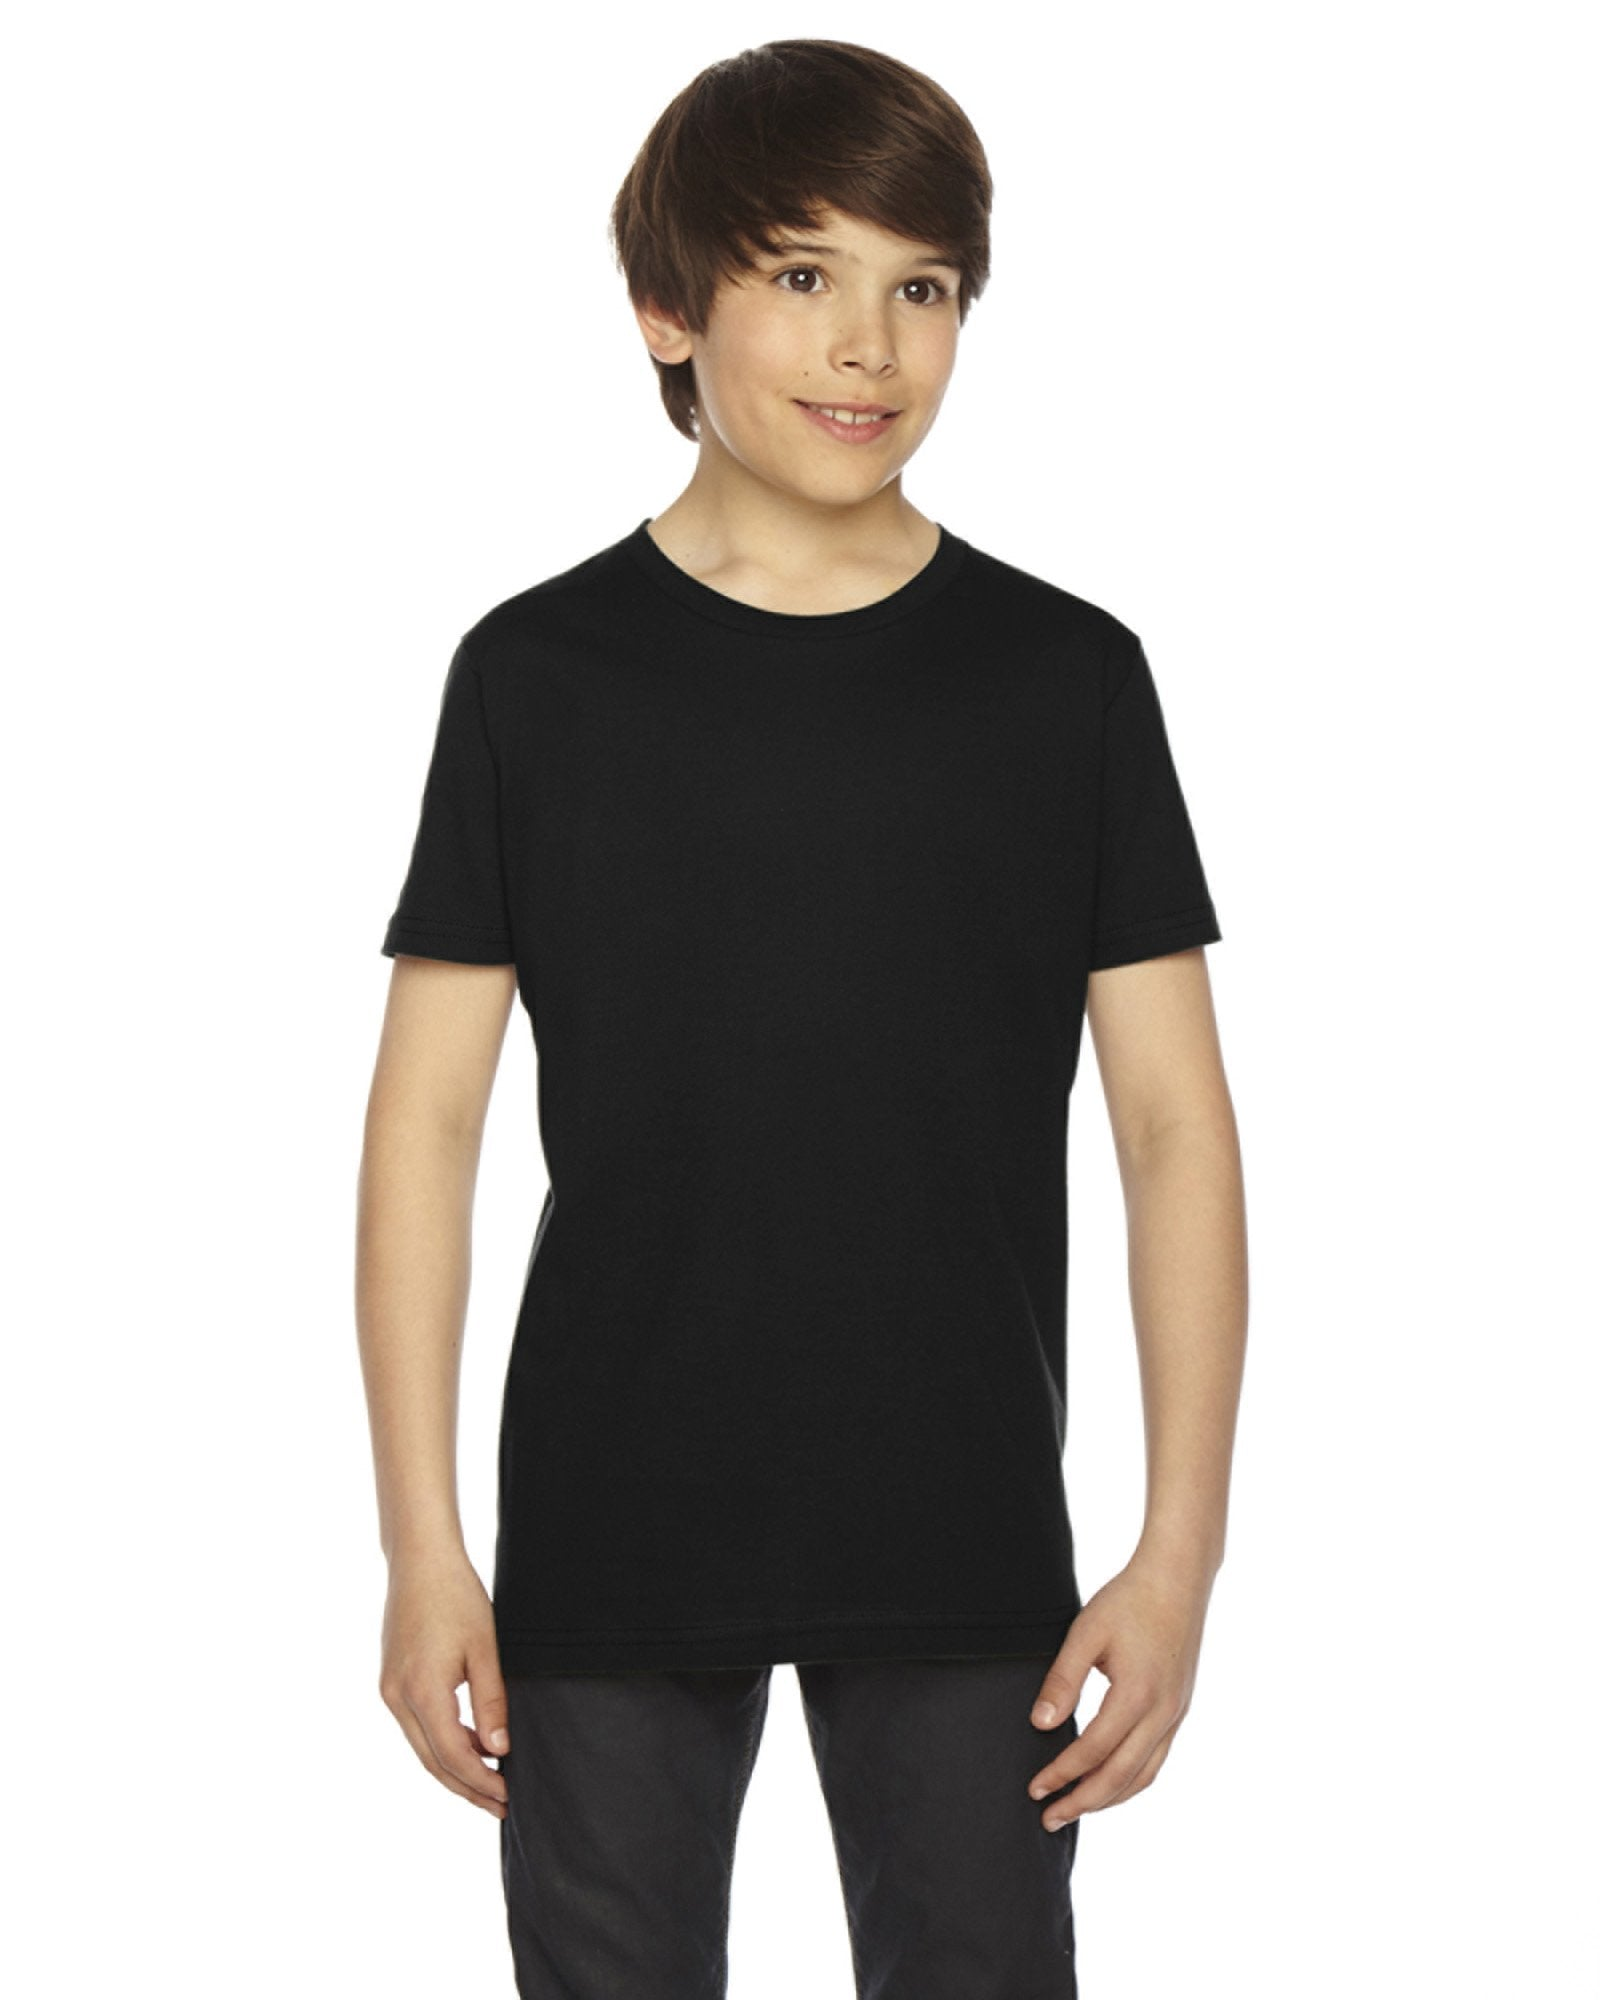 American Apparel - 2201 - Youth Fine Jersey Short-Sleeve T-Shirt